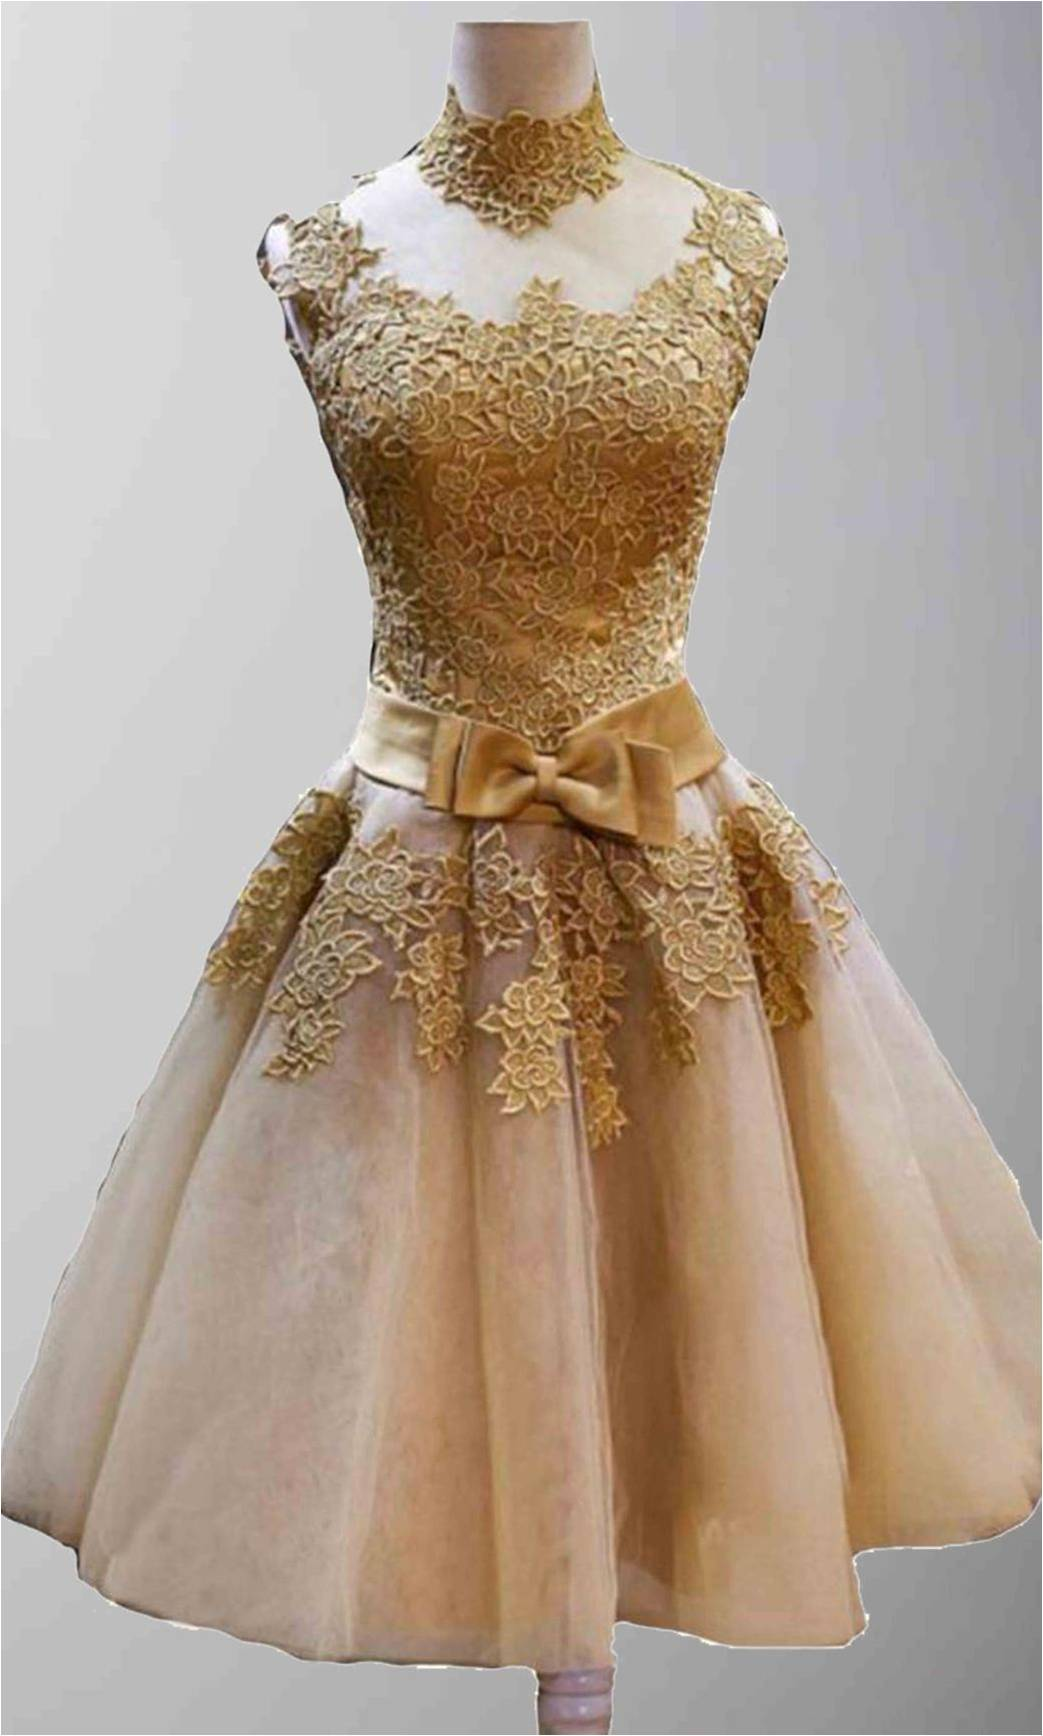 Custom Made Golden Vintage Princess High Neck Short Prom Dresses Graduation Tail